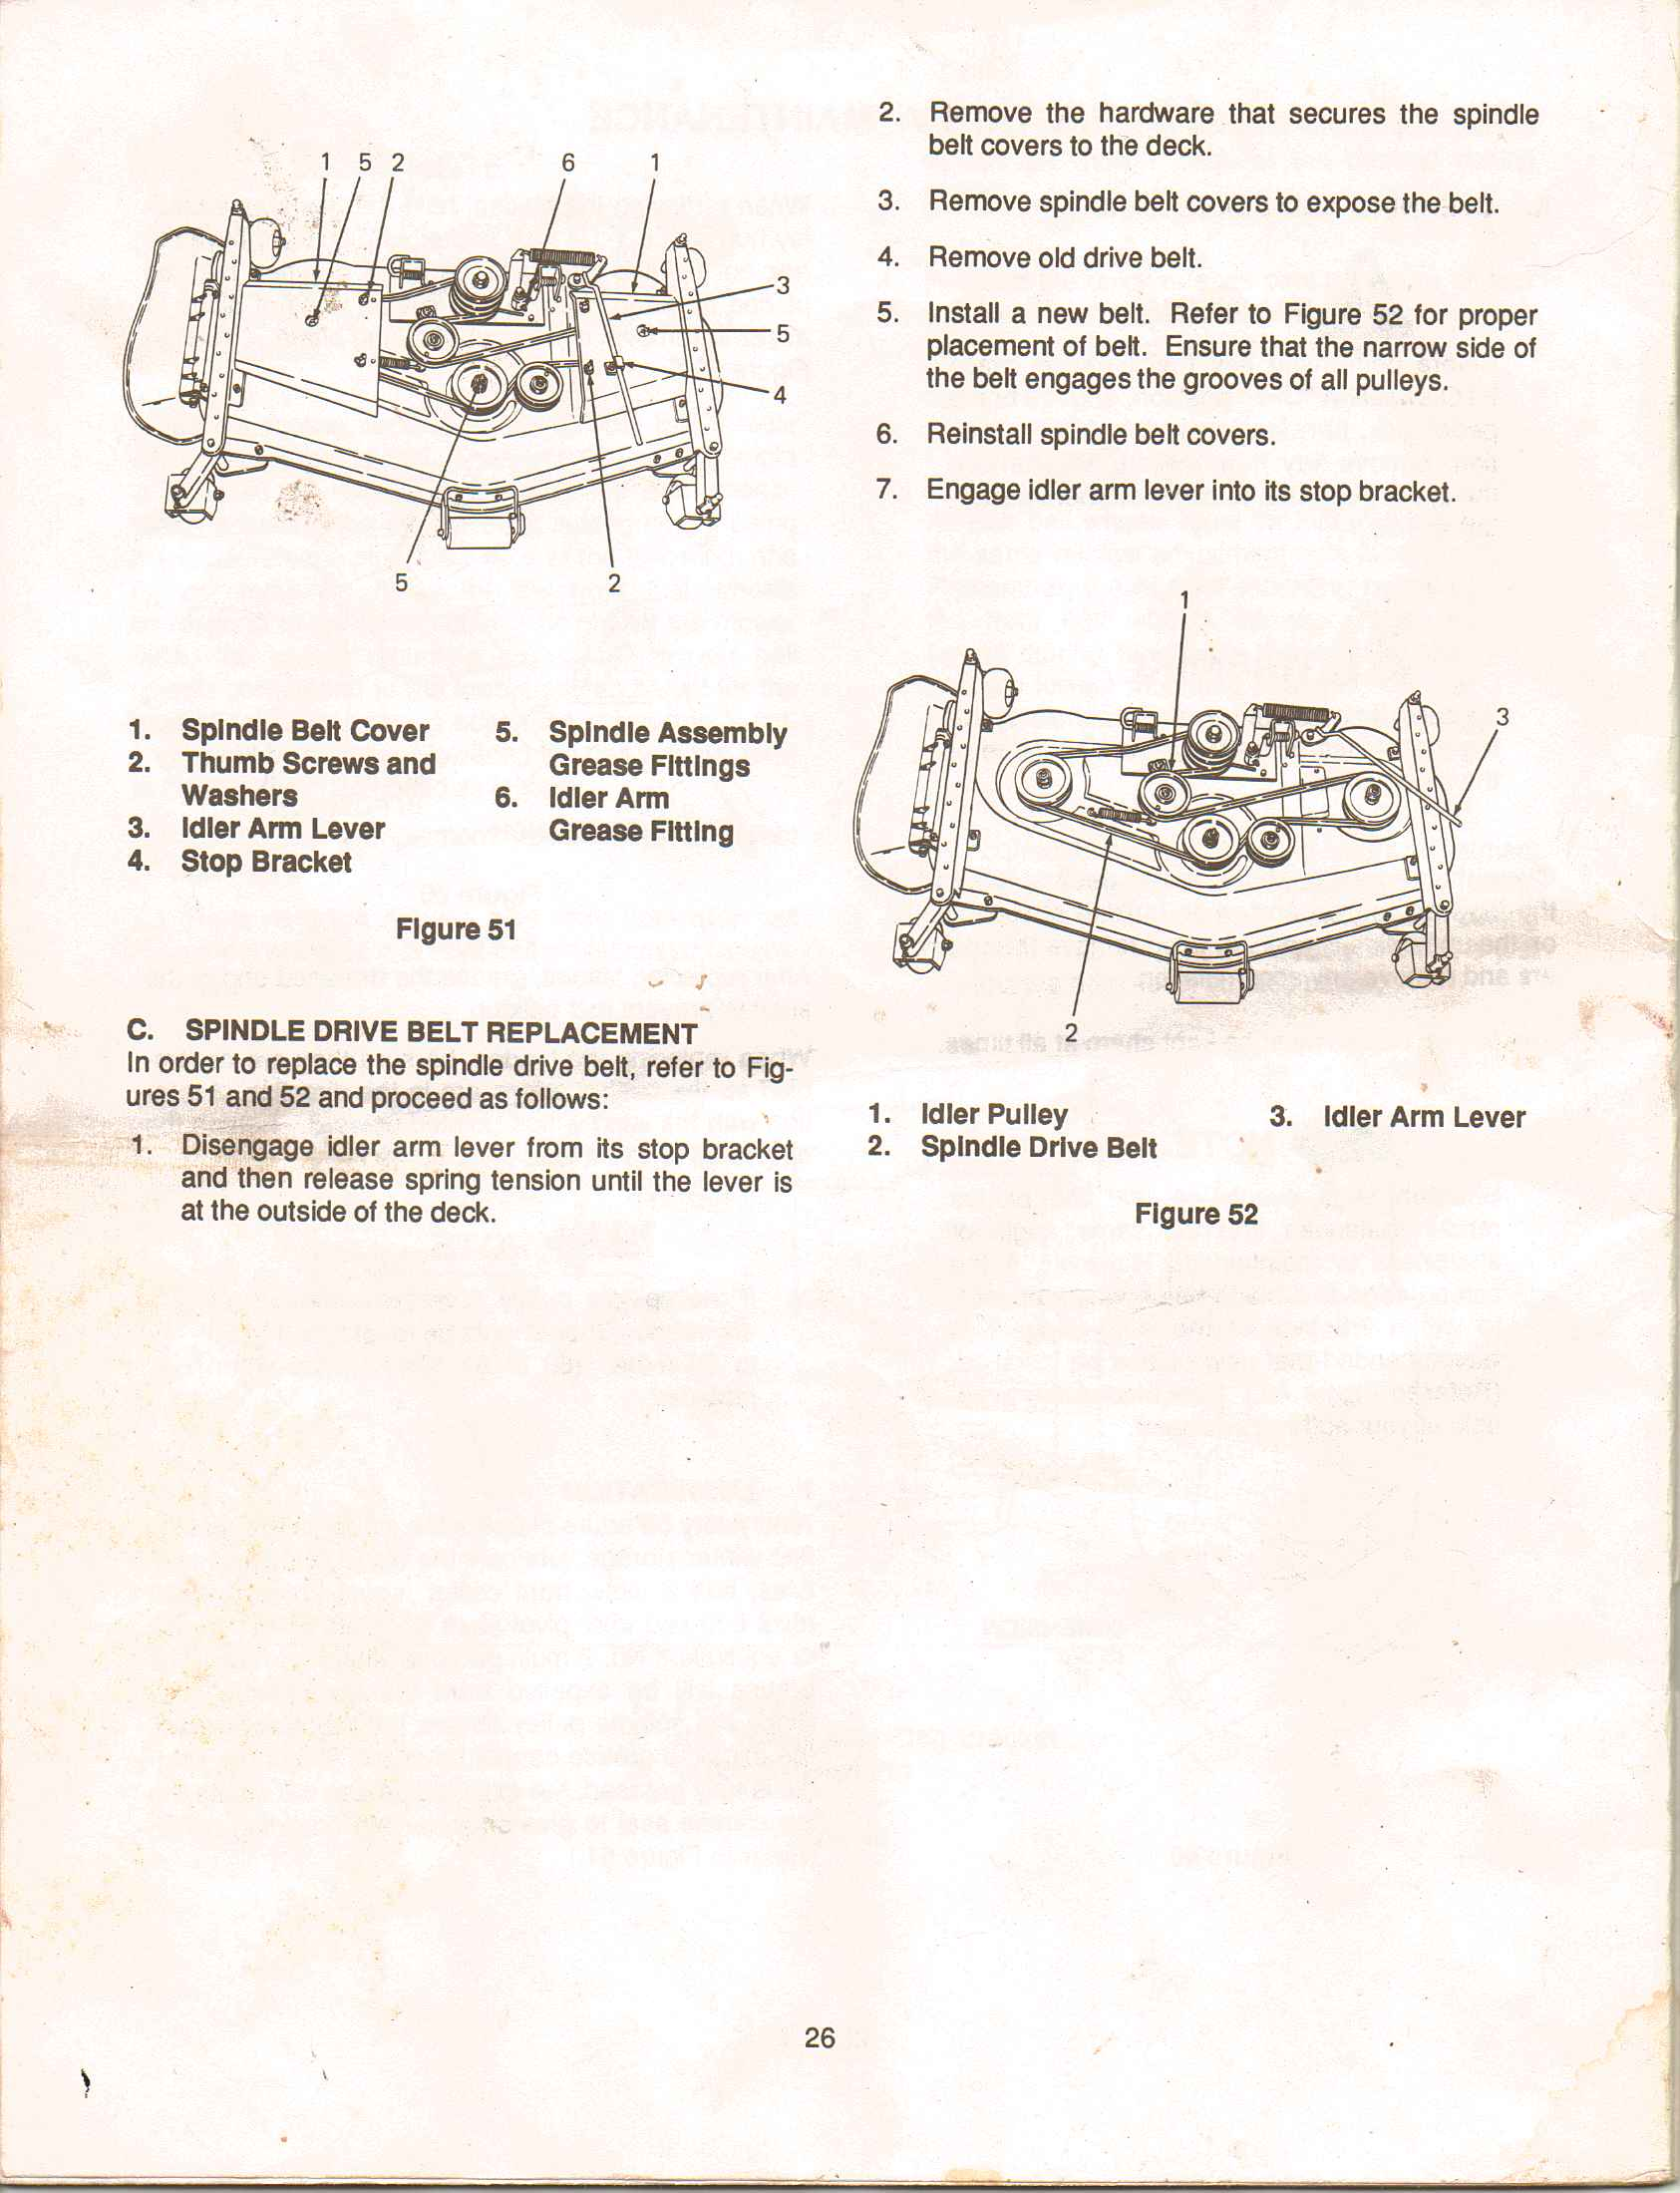 2165 Cub Cadet Pto Wiring Diagram - Wiring Diagrams Dock